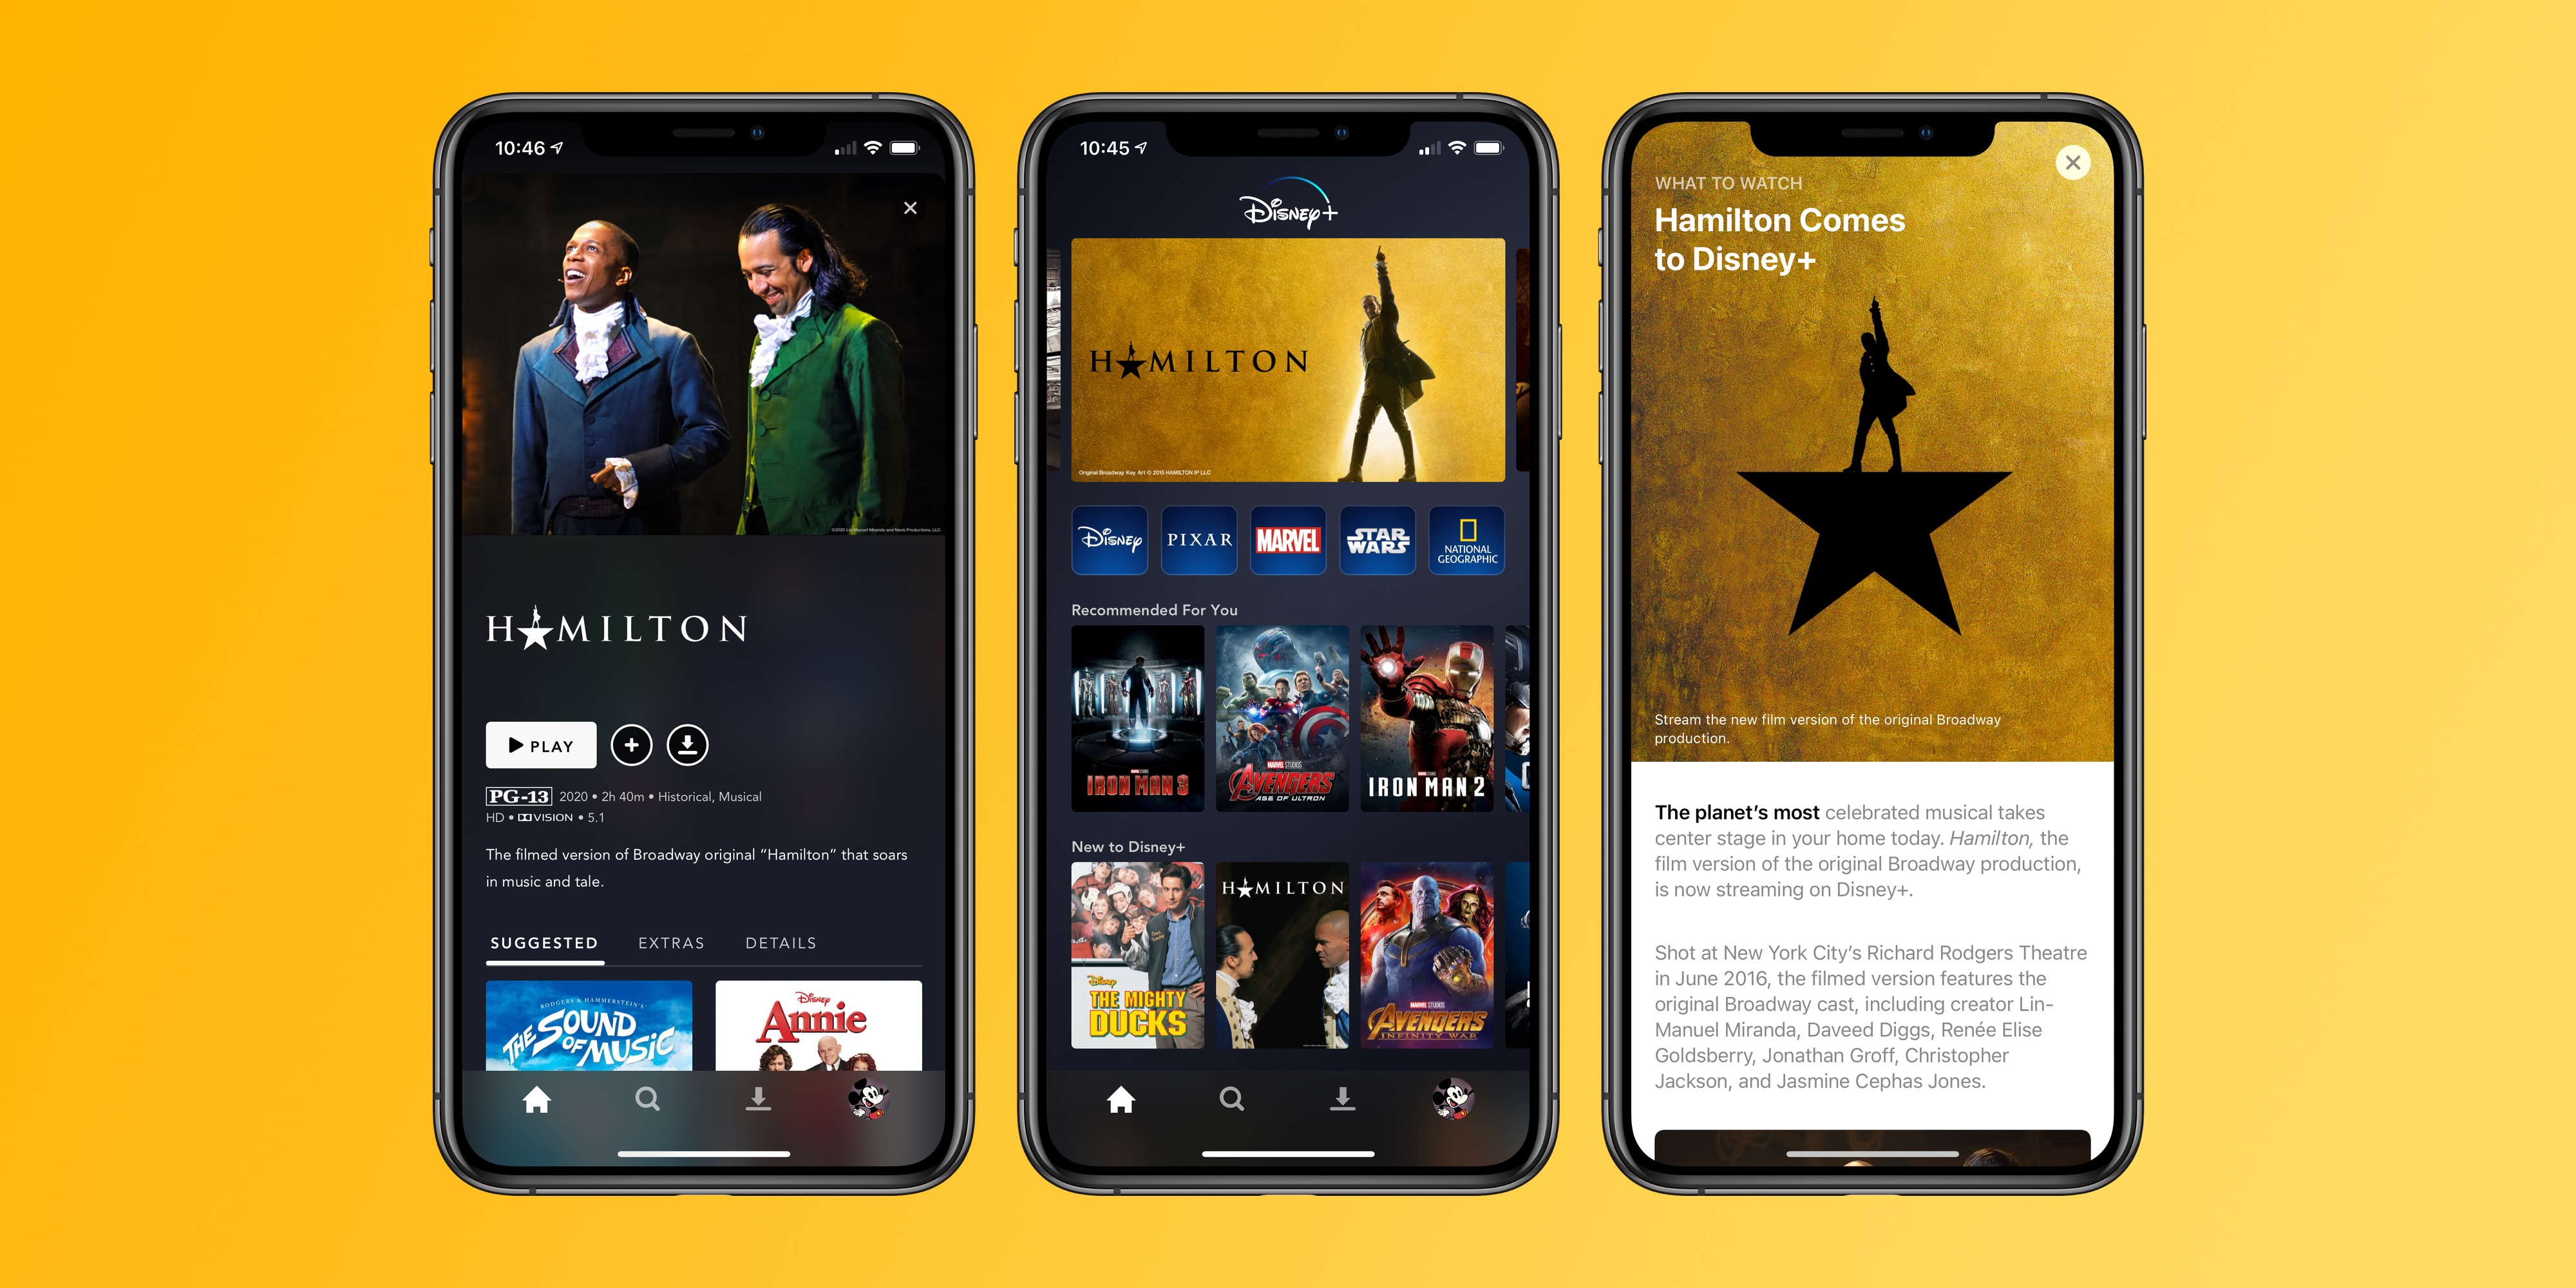 The story of how 'Hamilton' ended up on Disney+ and how to watch today – 9to5Mac